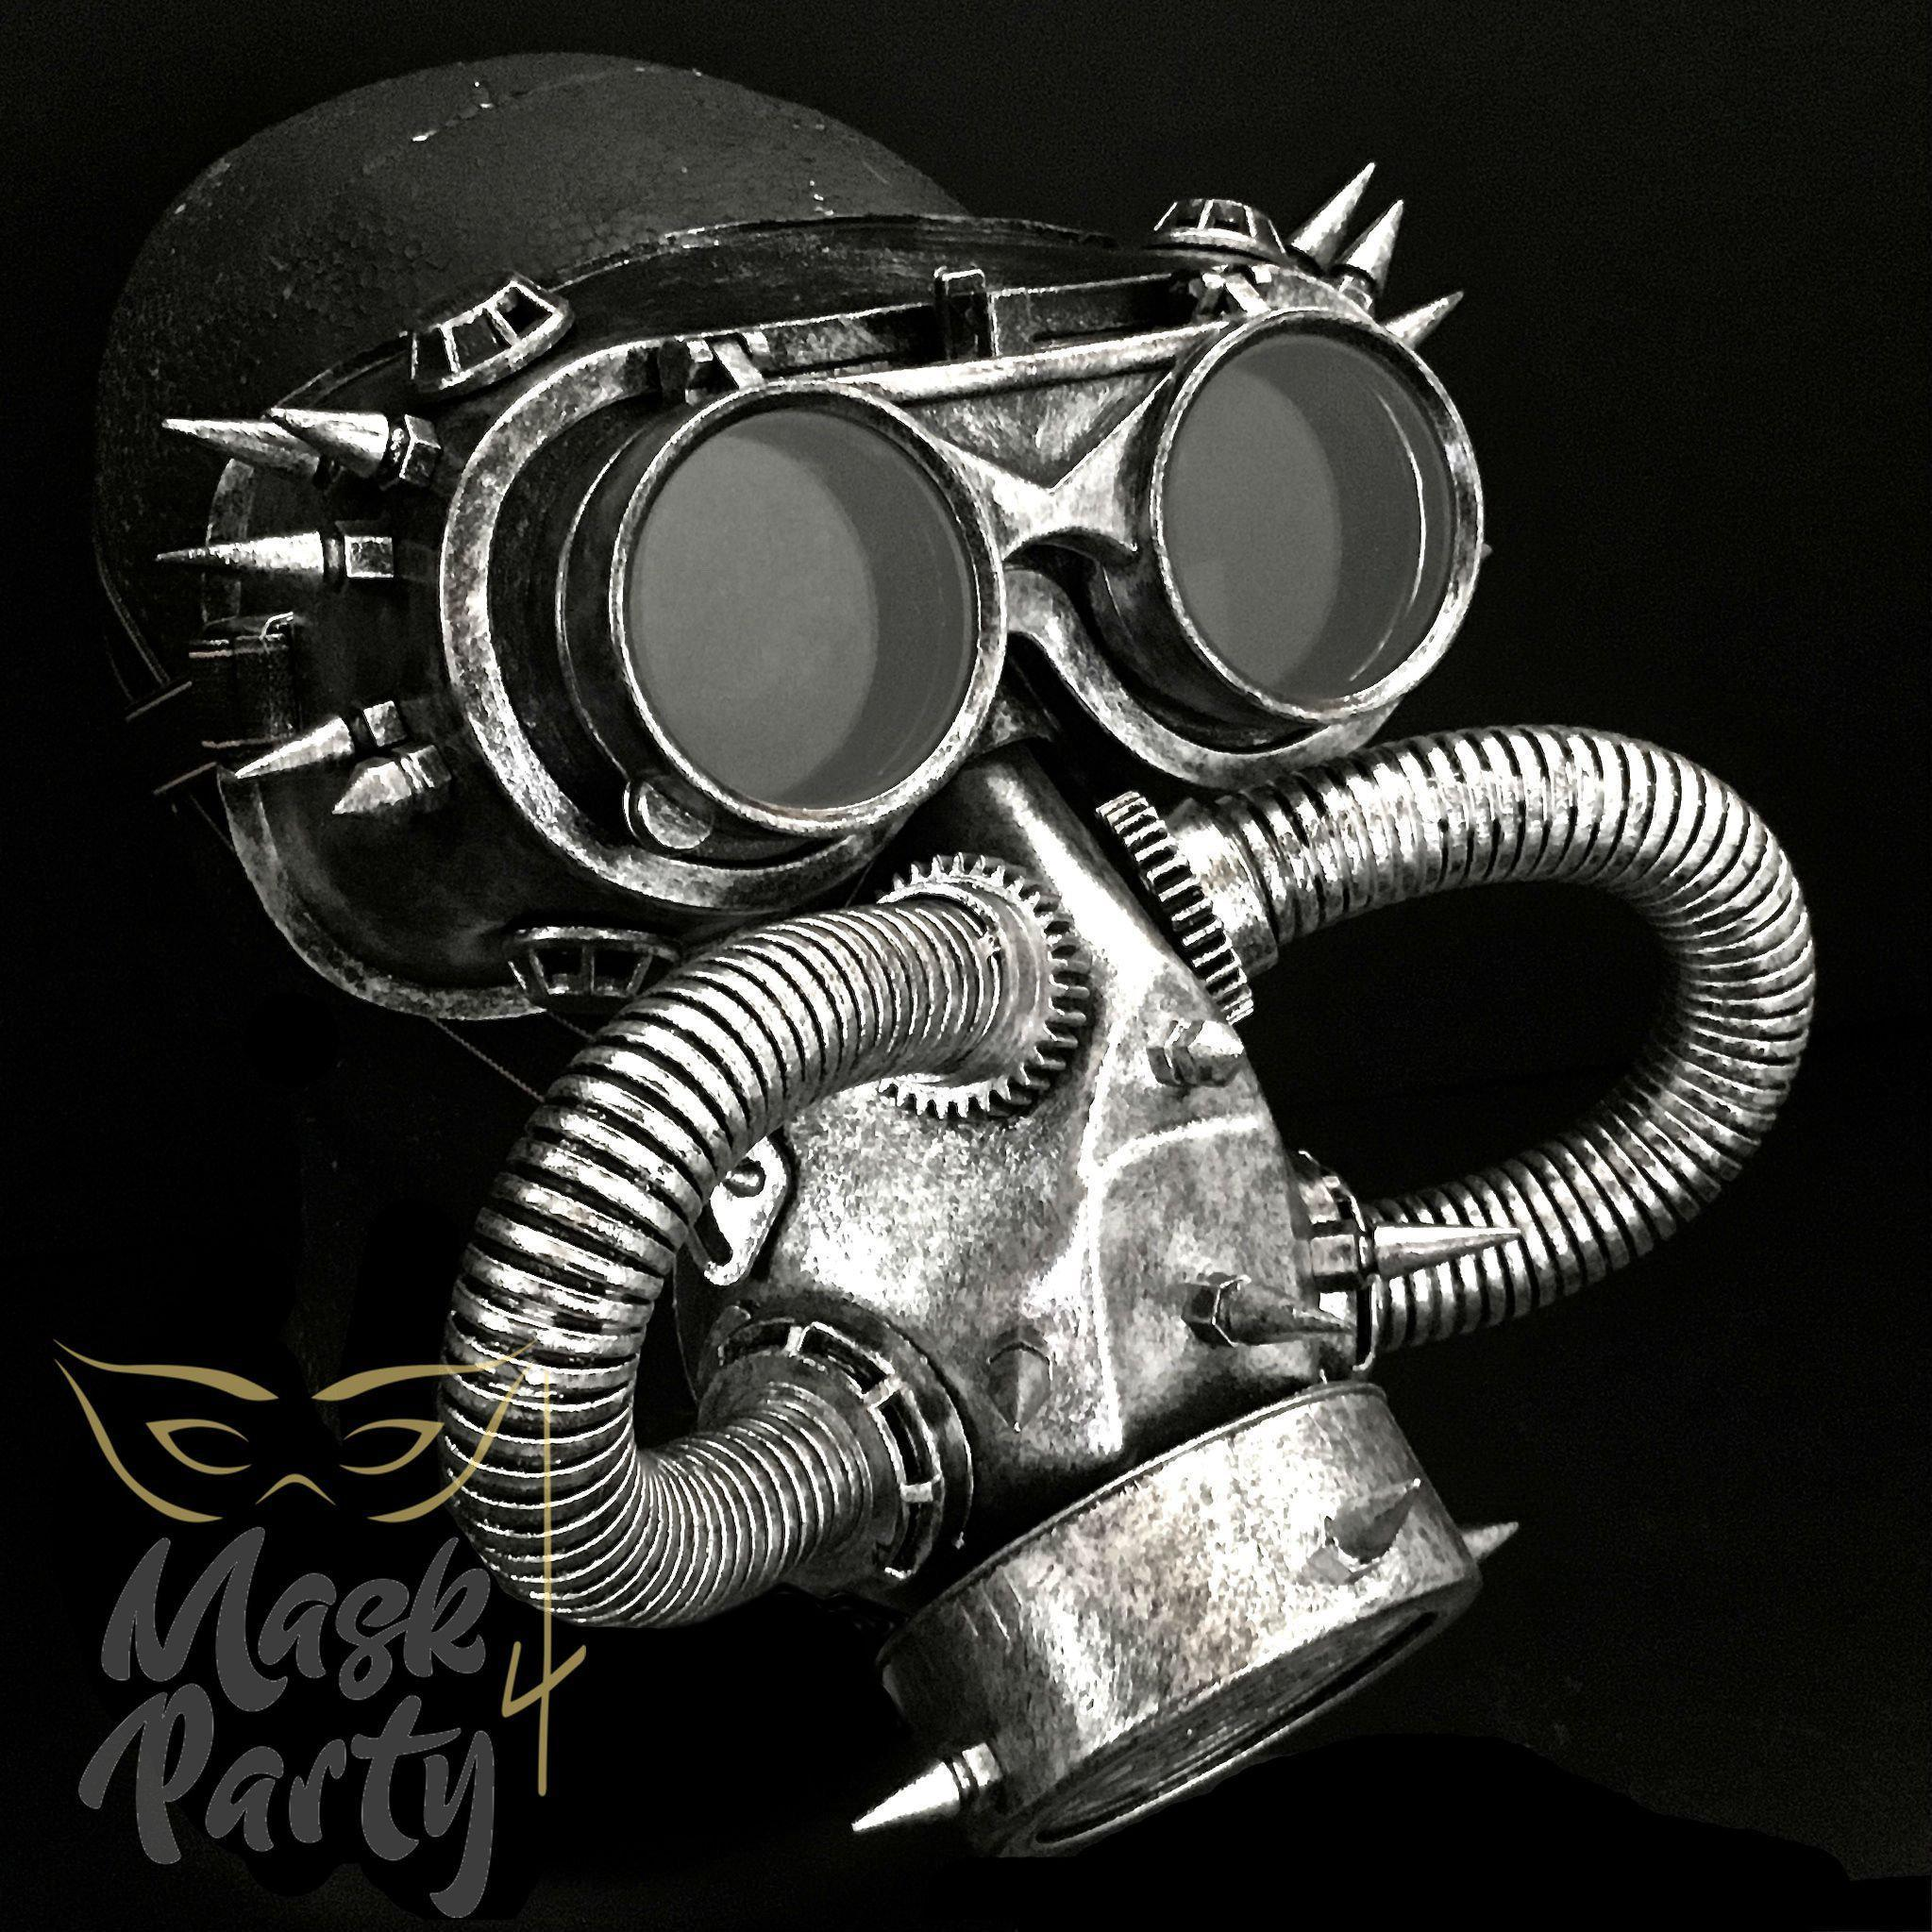 Steampunk Mask - Rivet Flip-Up Goggles & Gas Tube - Silver/Black - Mask4Party